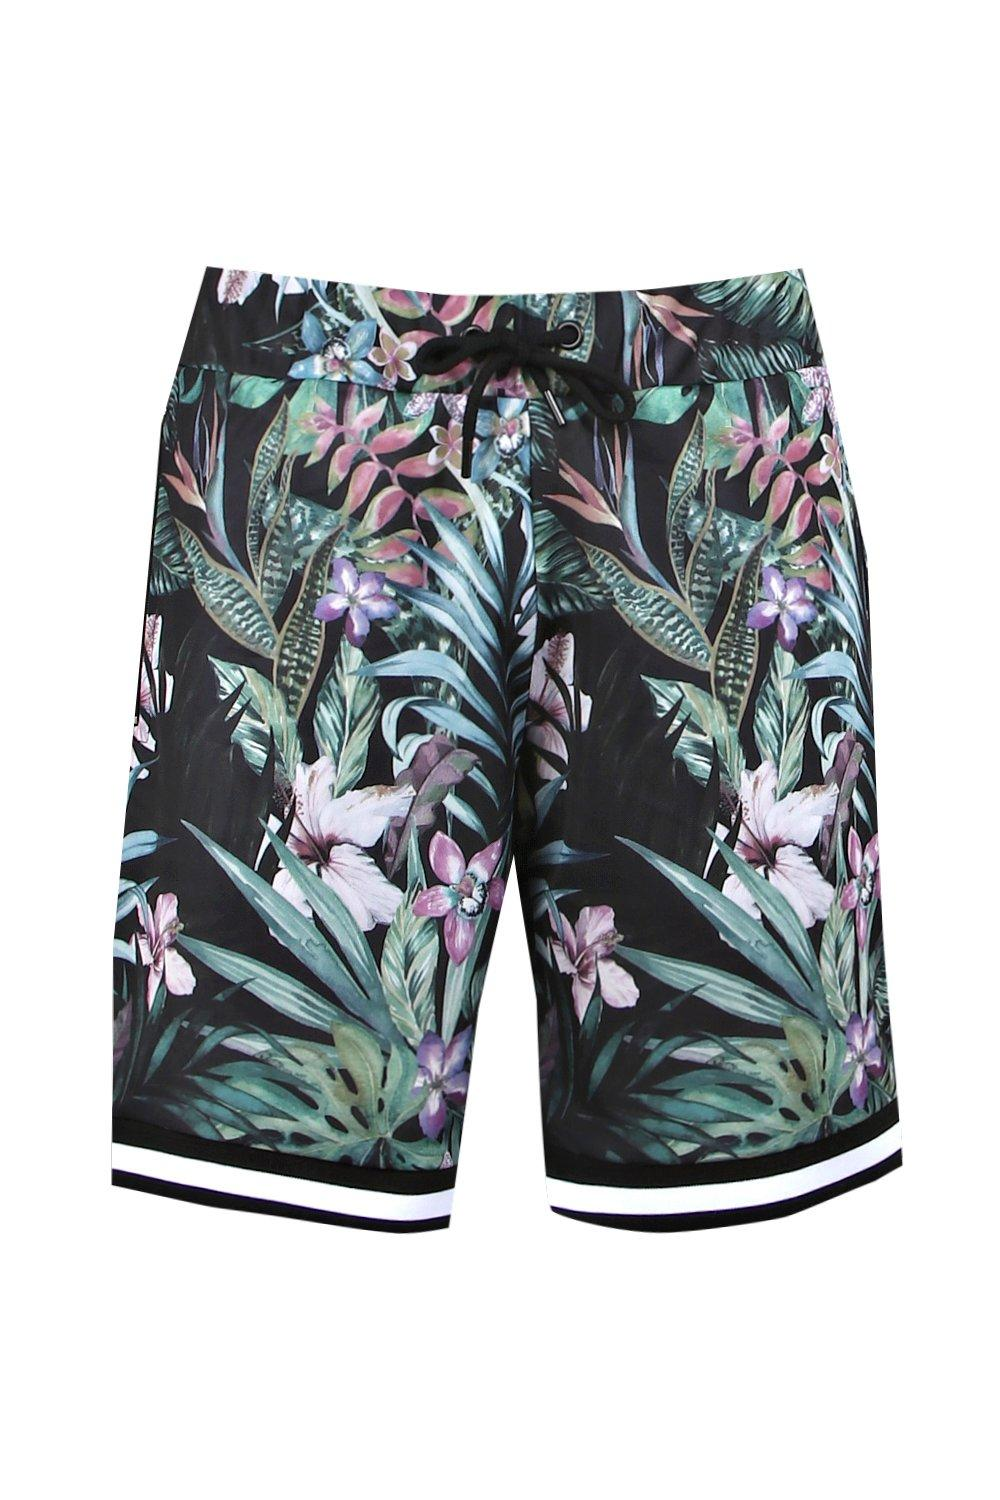 boohooMAN black Floral All Over Print Mid Length Short